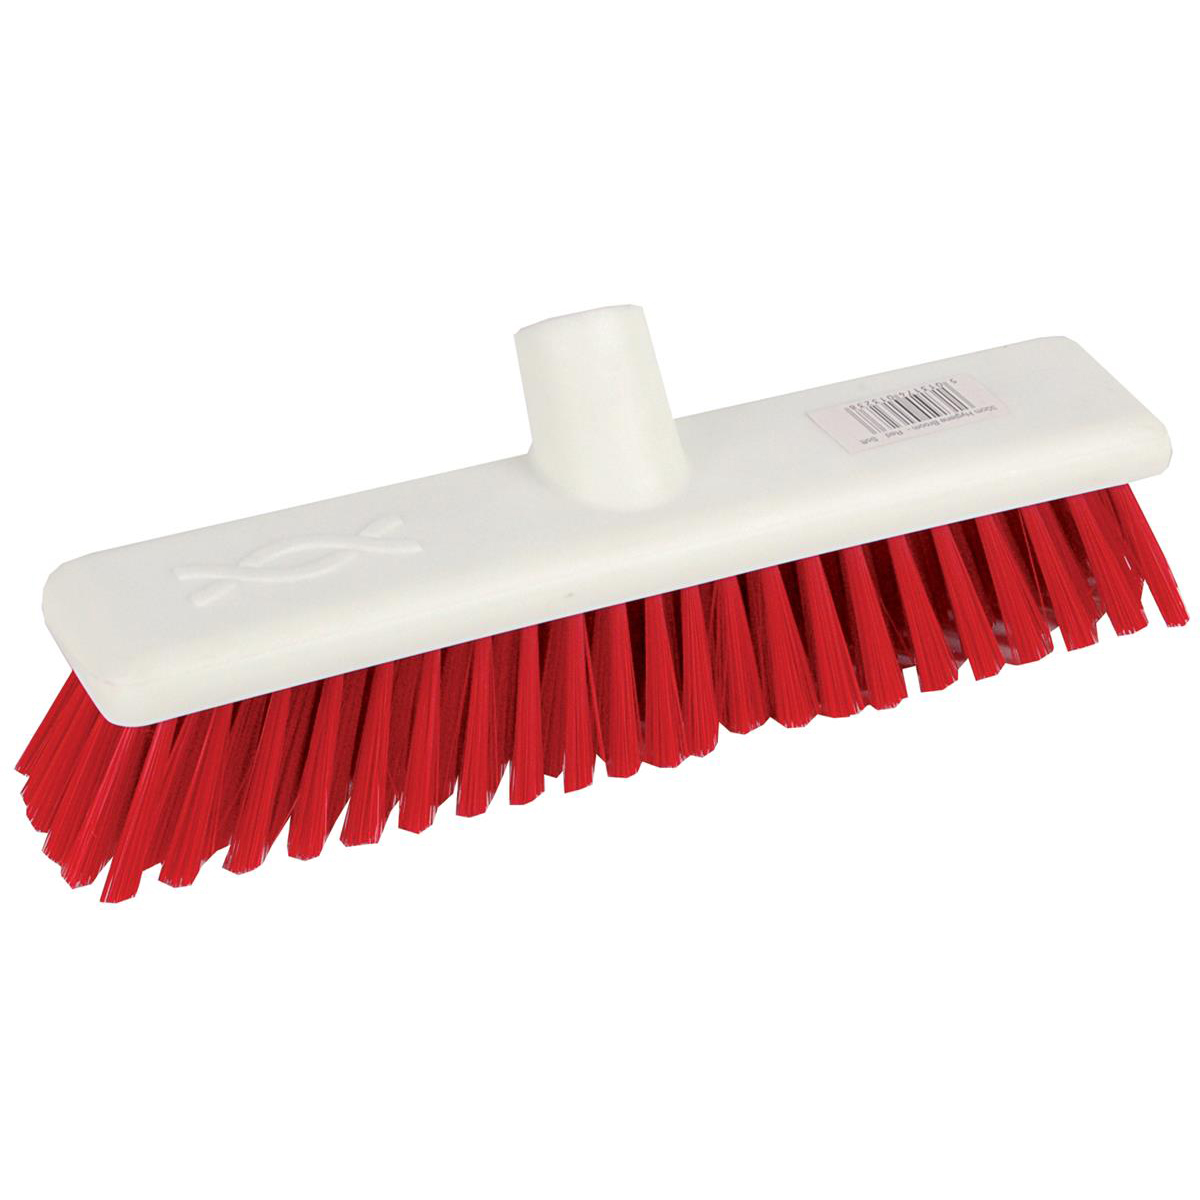 Robert Scott & Sons Abbey Hygiene Broom 12inch Washable Soft Broom Head Red Ref BHYRS12SR